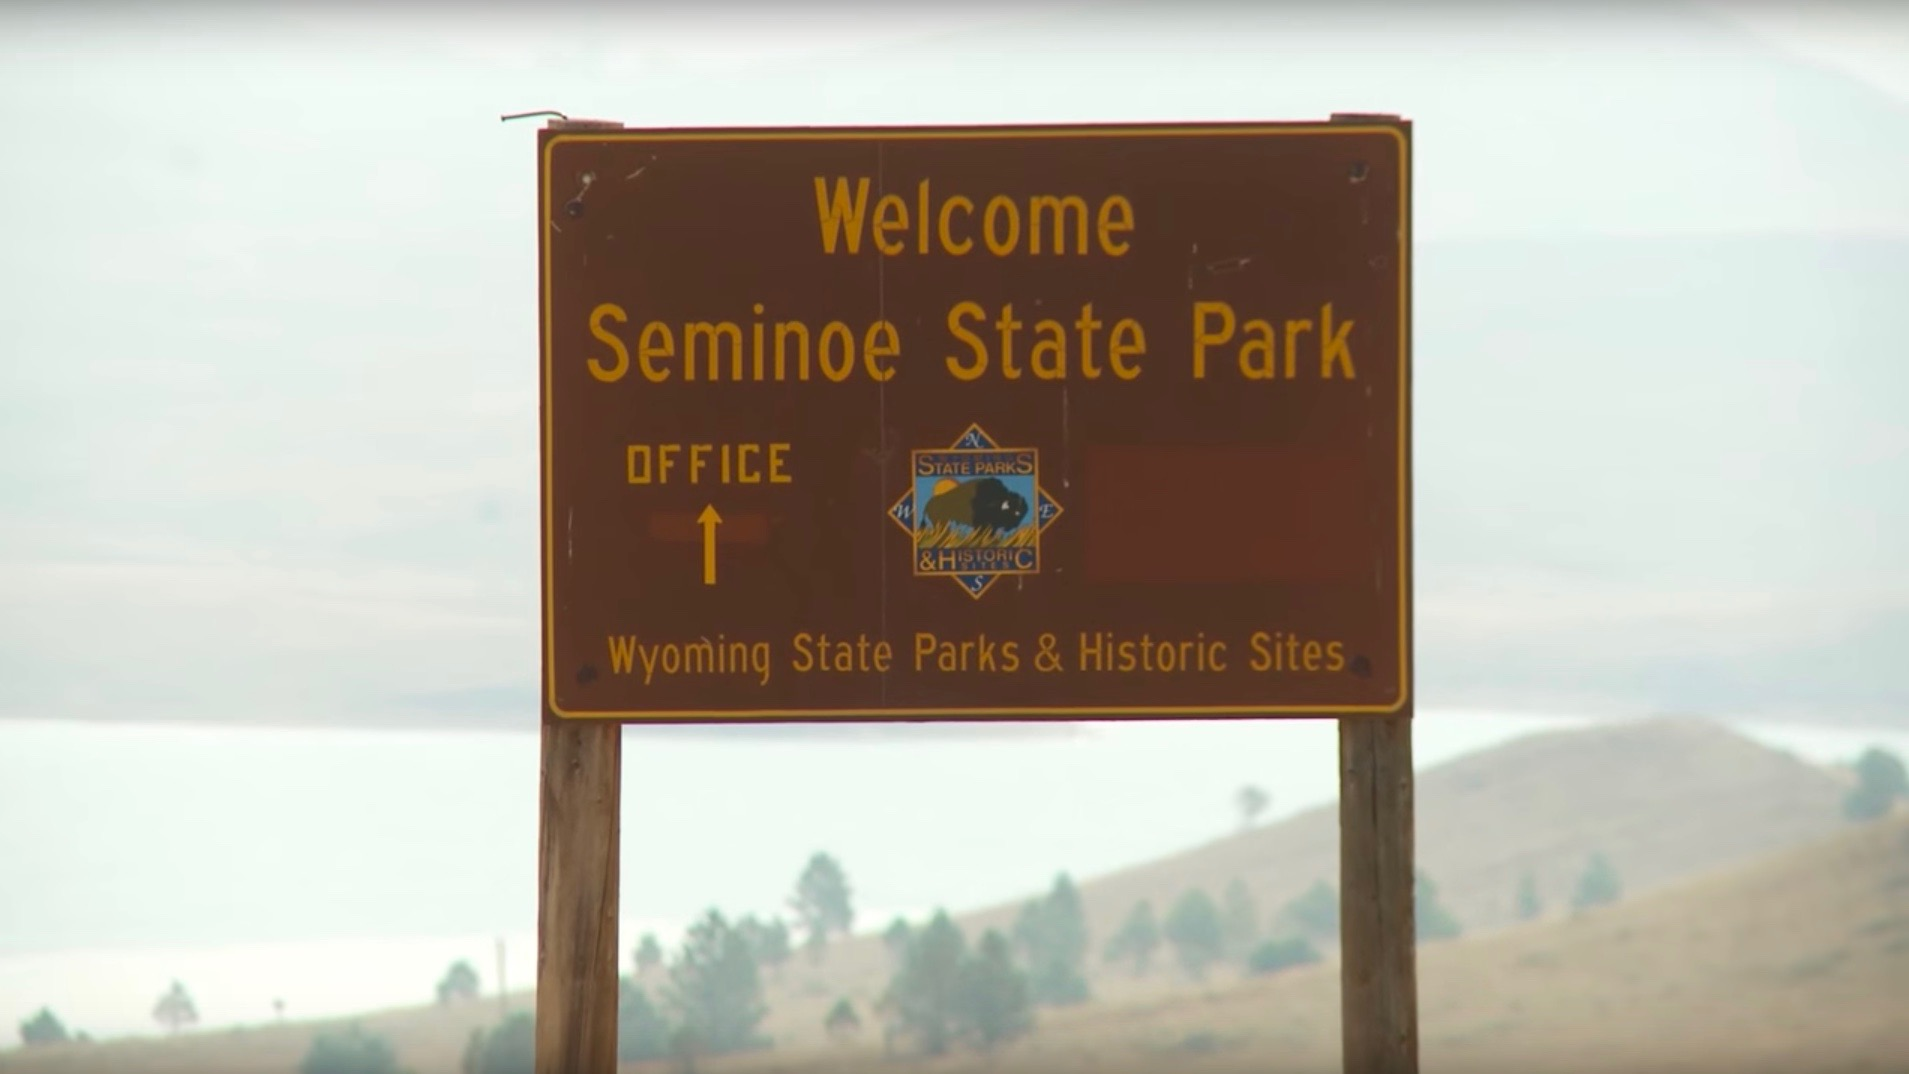 1,450 Acre State Park at the base of the Seminoe Mountains